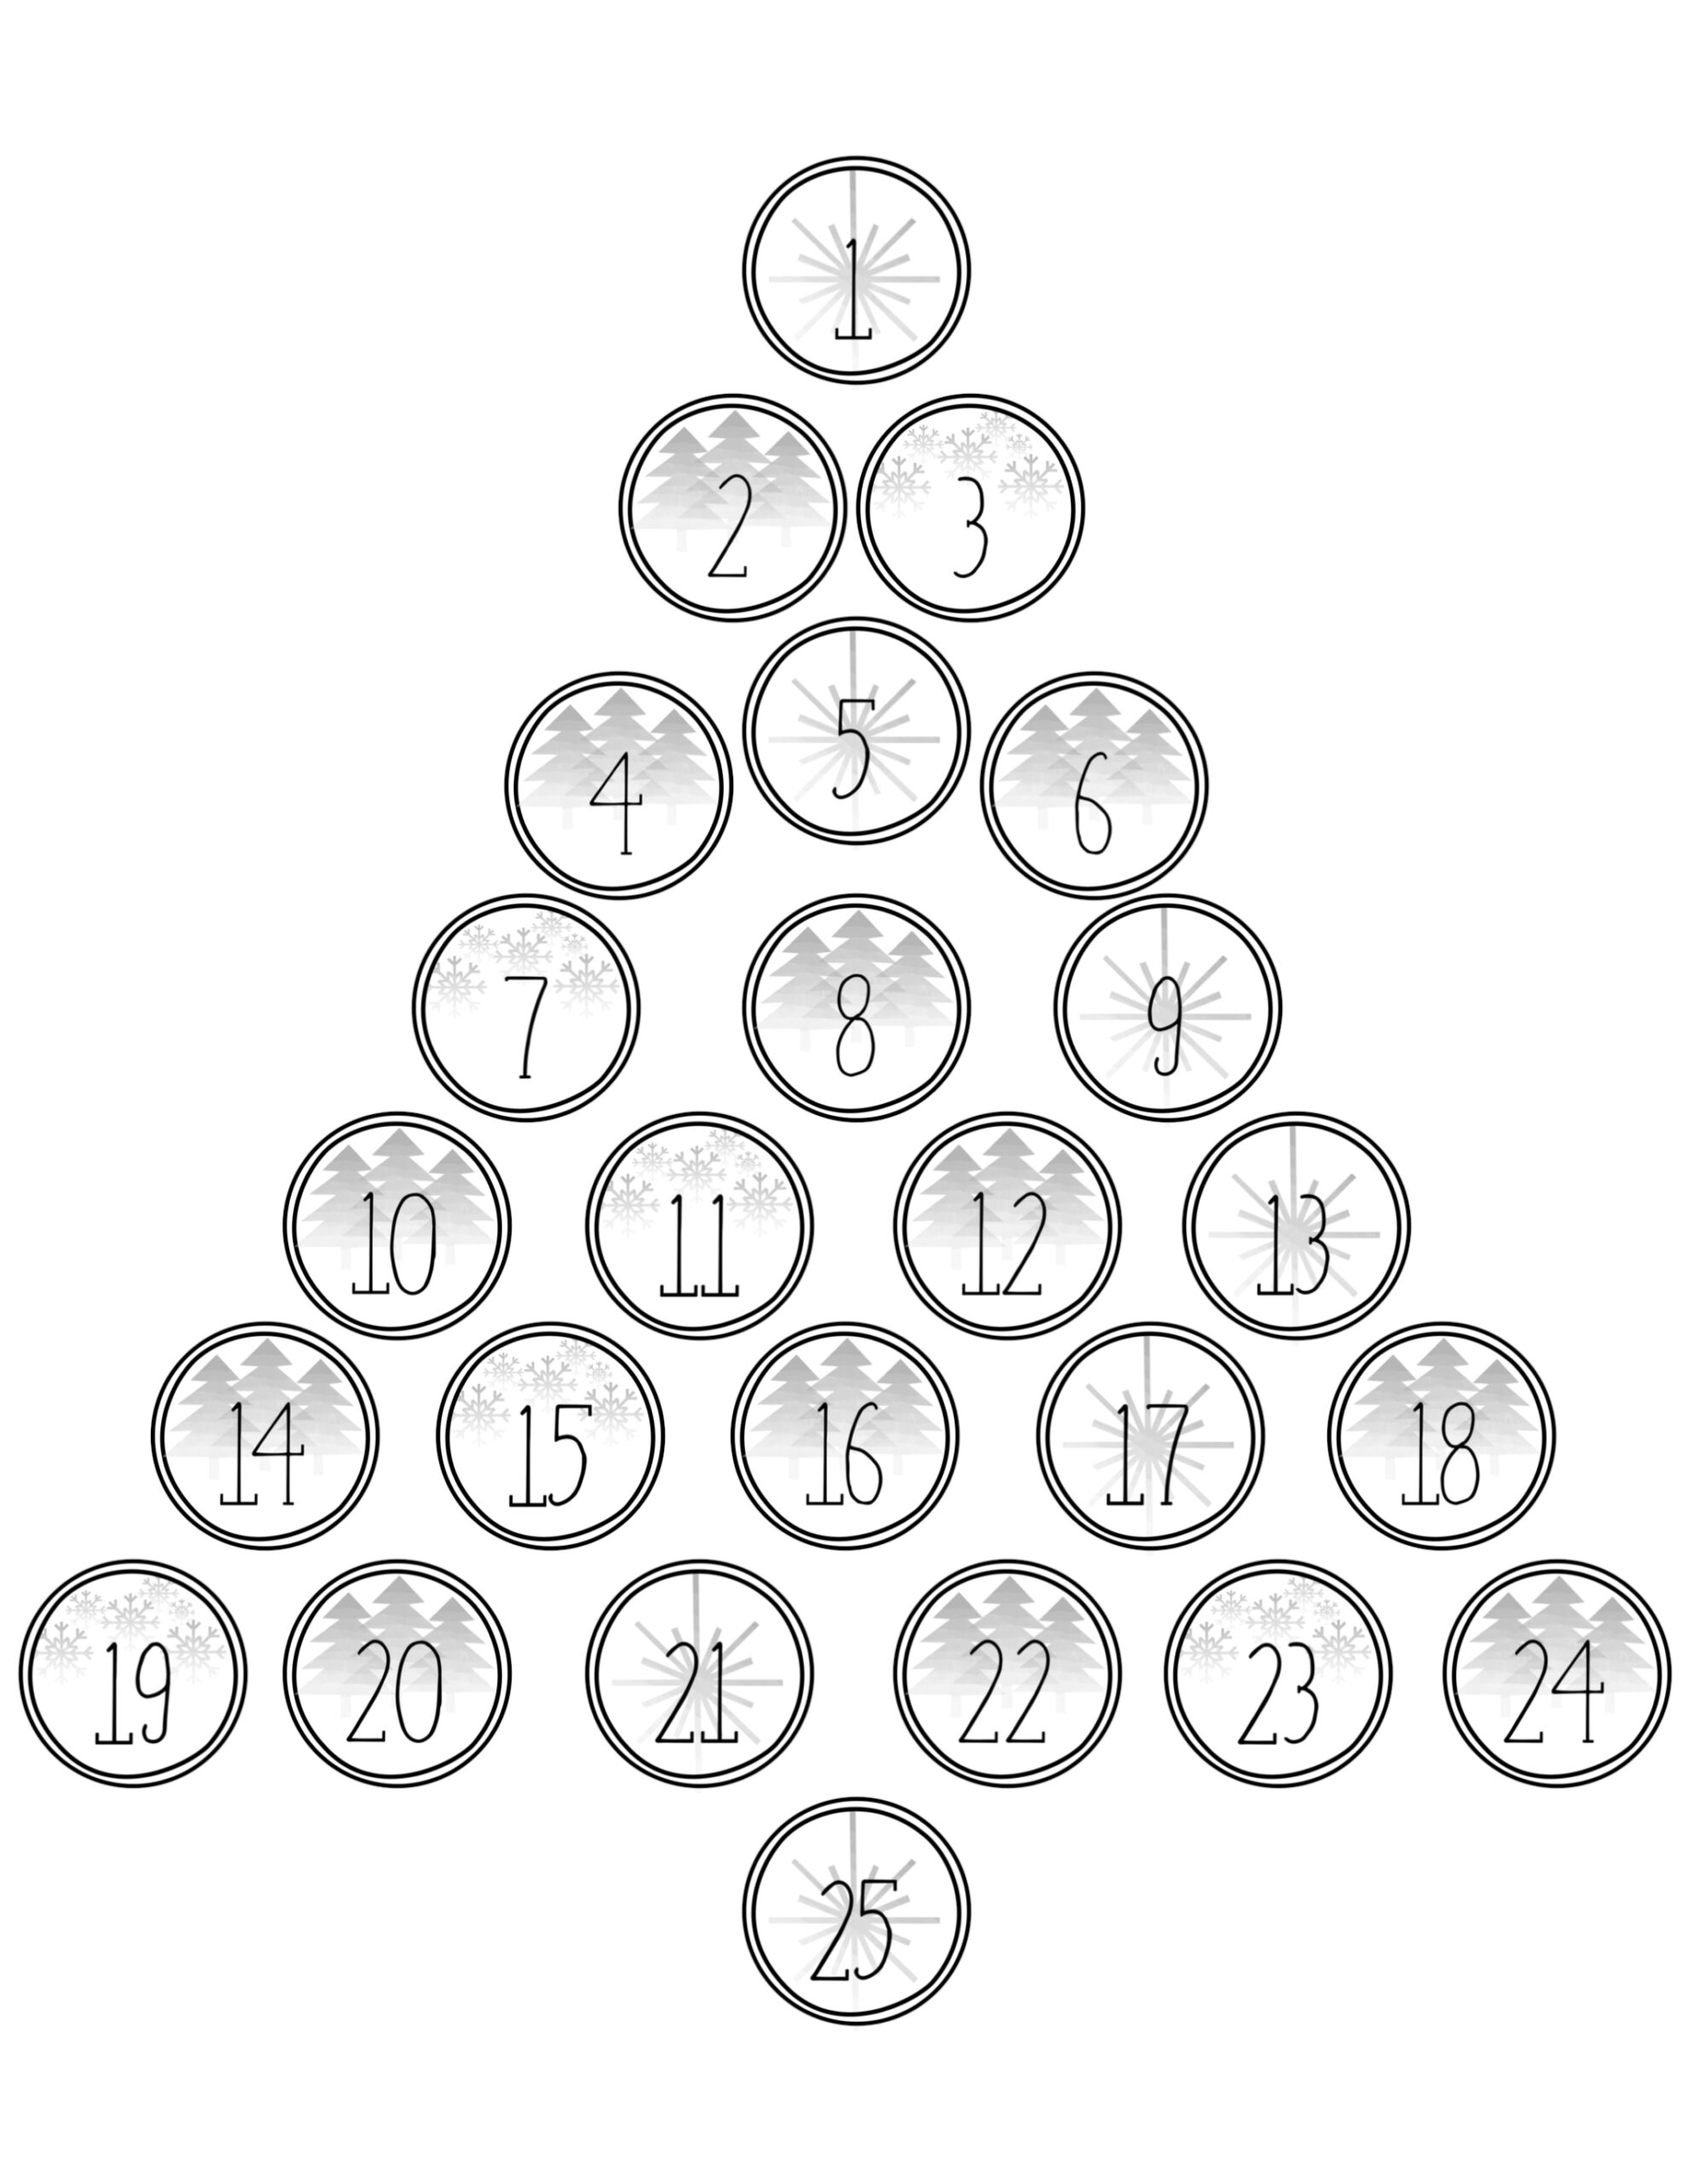 image relating to Advent Calendar Printable named Xmas Introduction Calendar Printable Quantities - Paper Path Design and style